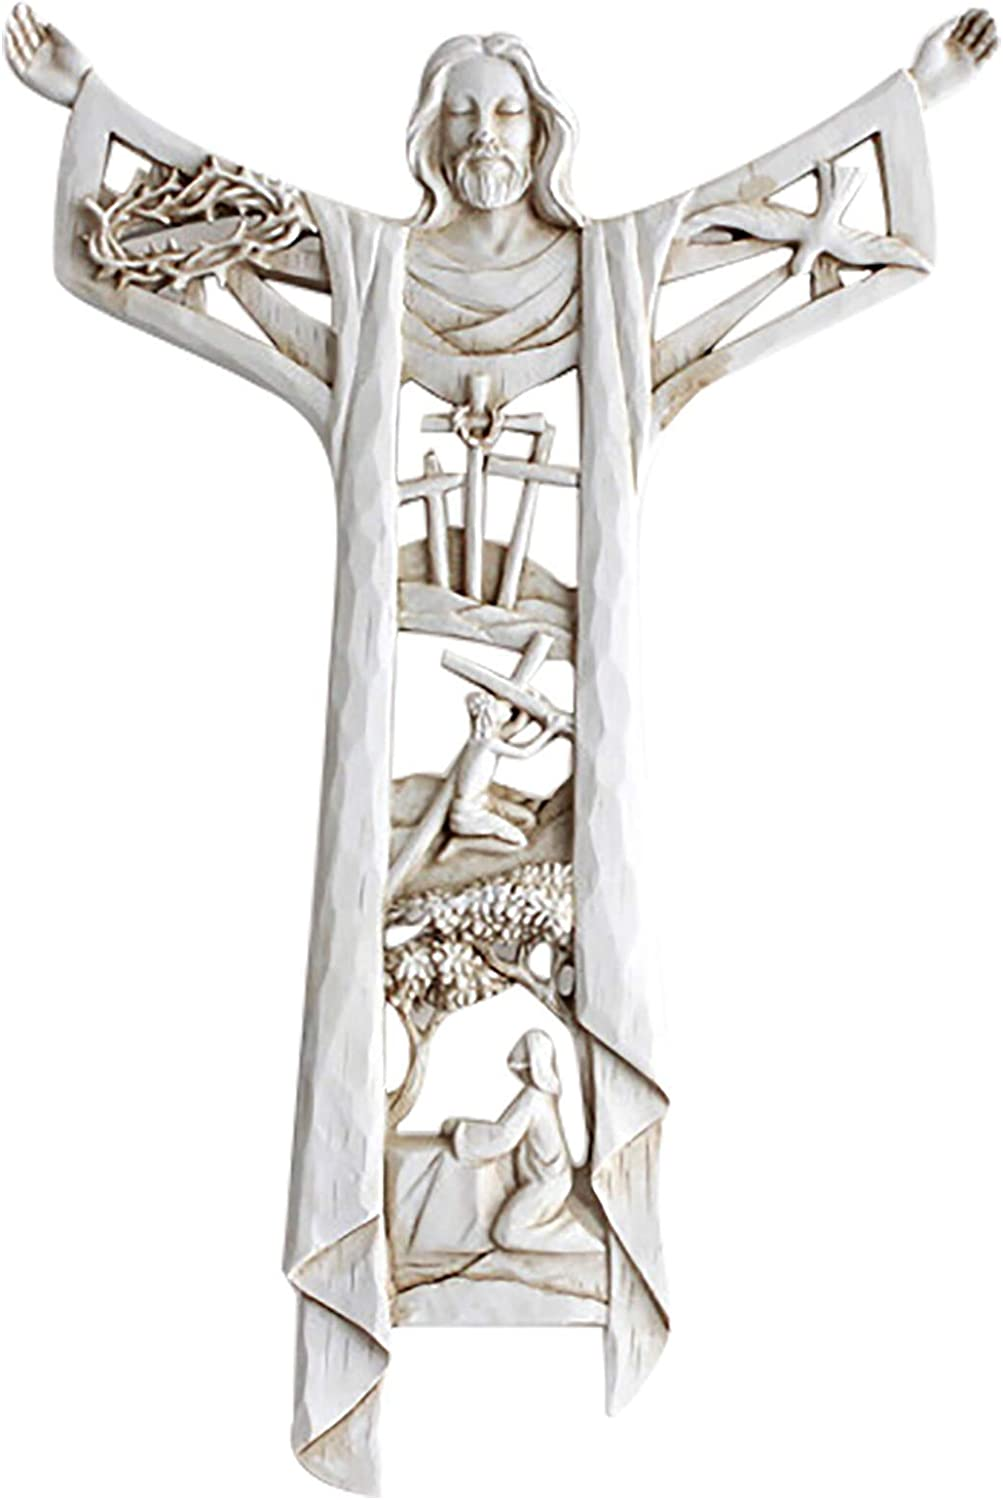 A Oakland Mall Risen Christ outlet Wall Hanging Supper Cross Last